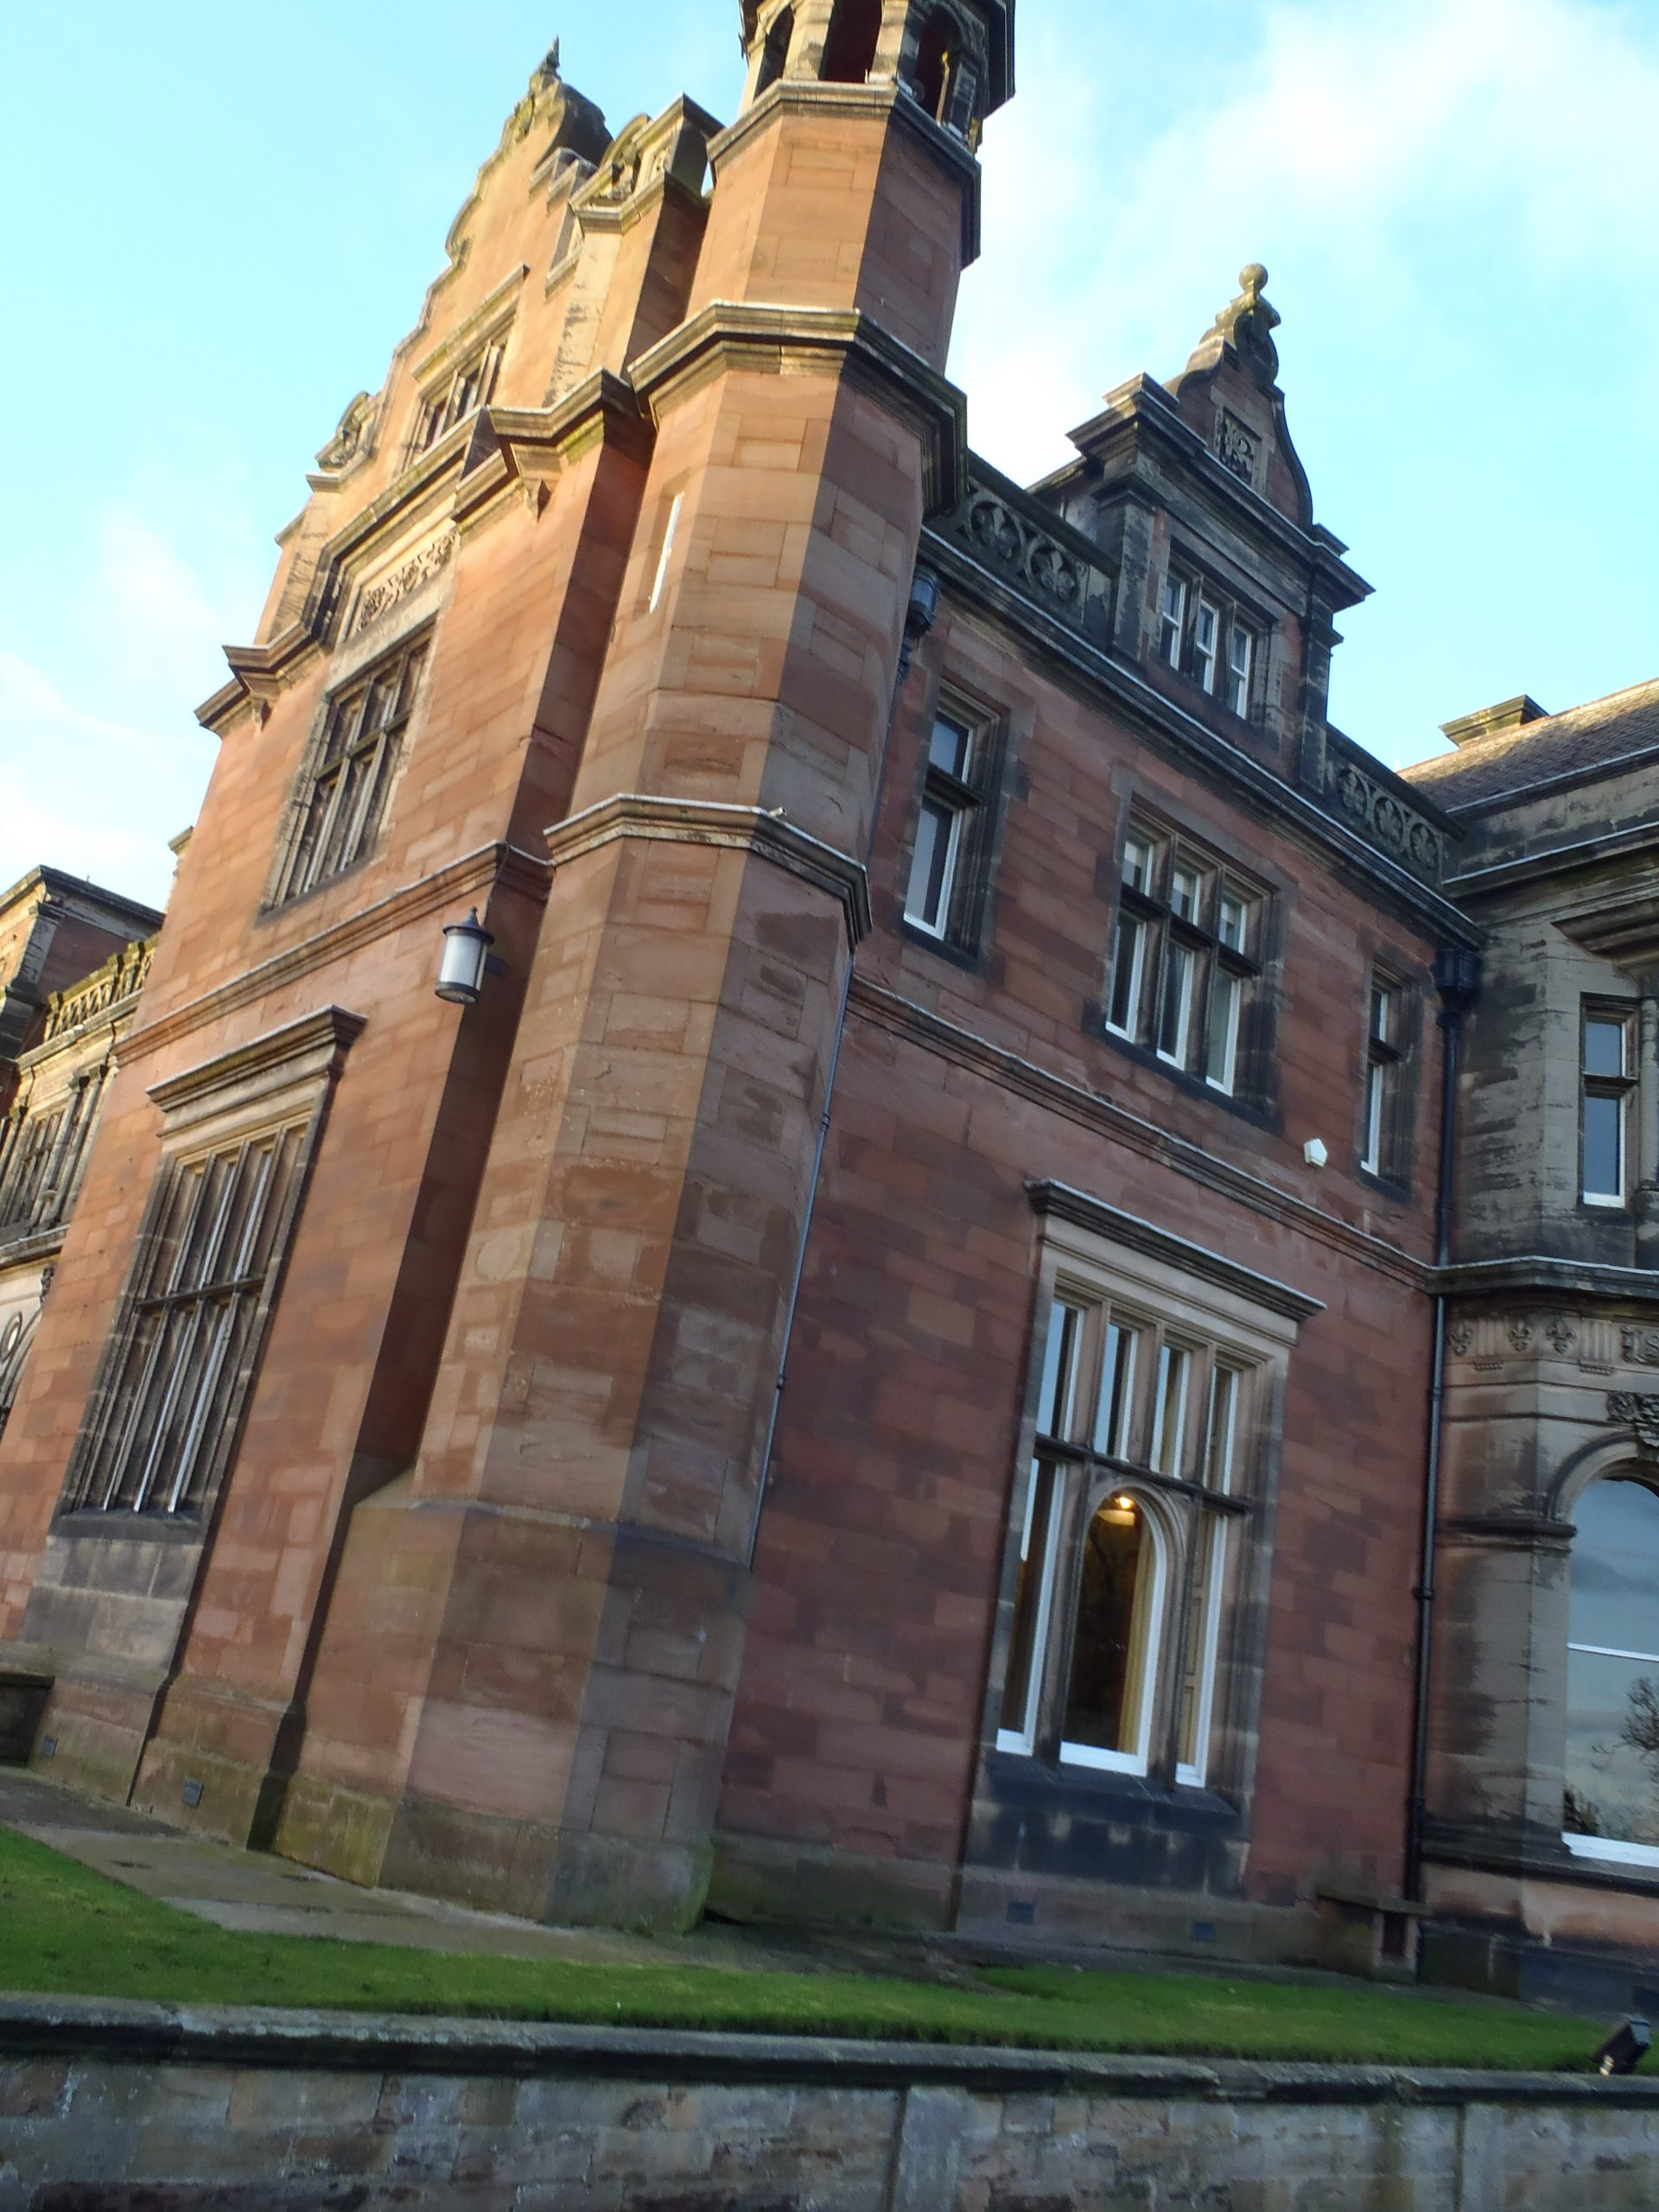 Keele University. Don't be fooled by the beautiful architecture; this was pretty much the pique of Keele's interest level. (author photo, Stoke-on-Trent, UK)